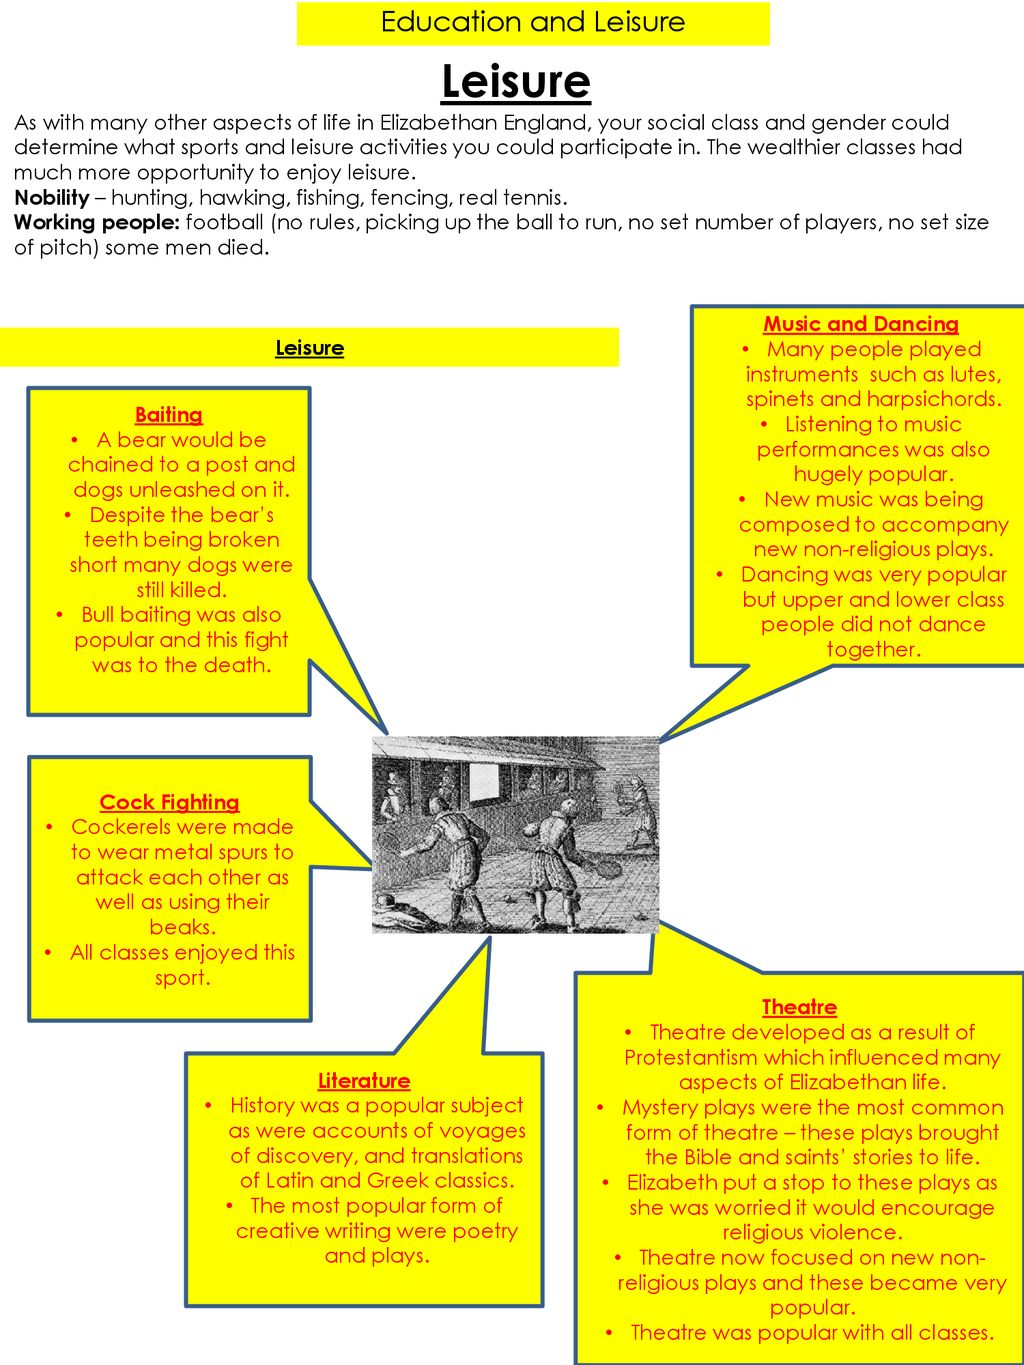 Early Elizabethan England Knowledge Booklet - ppt download